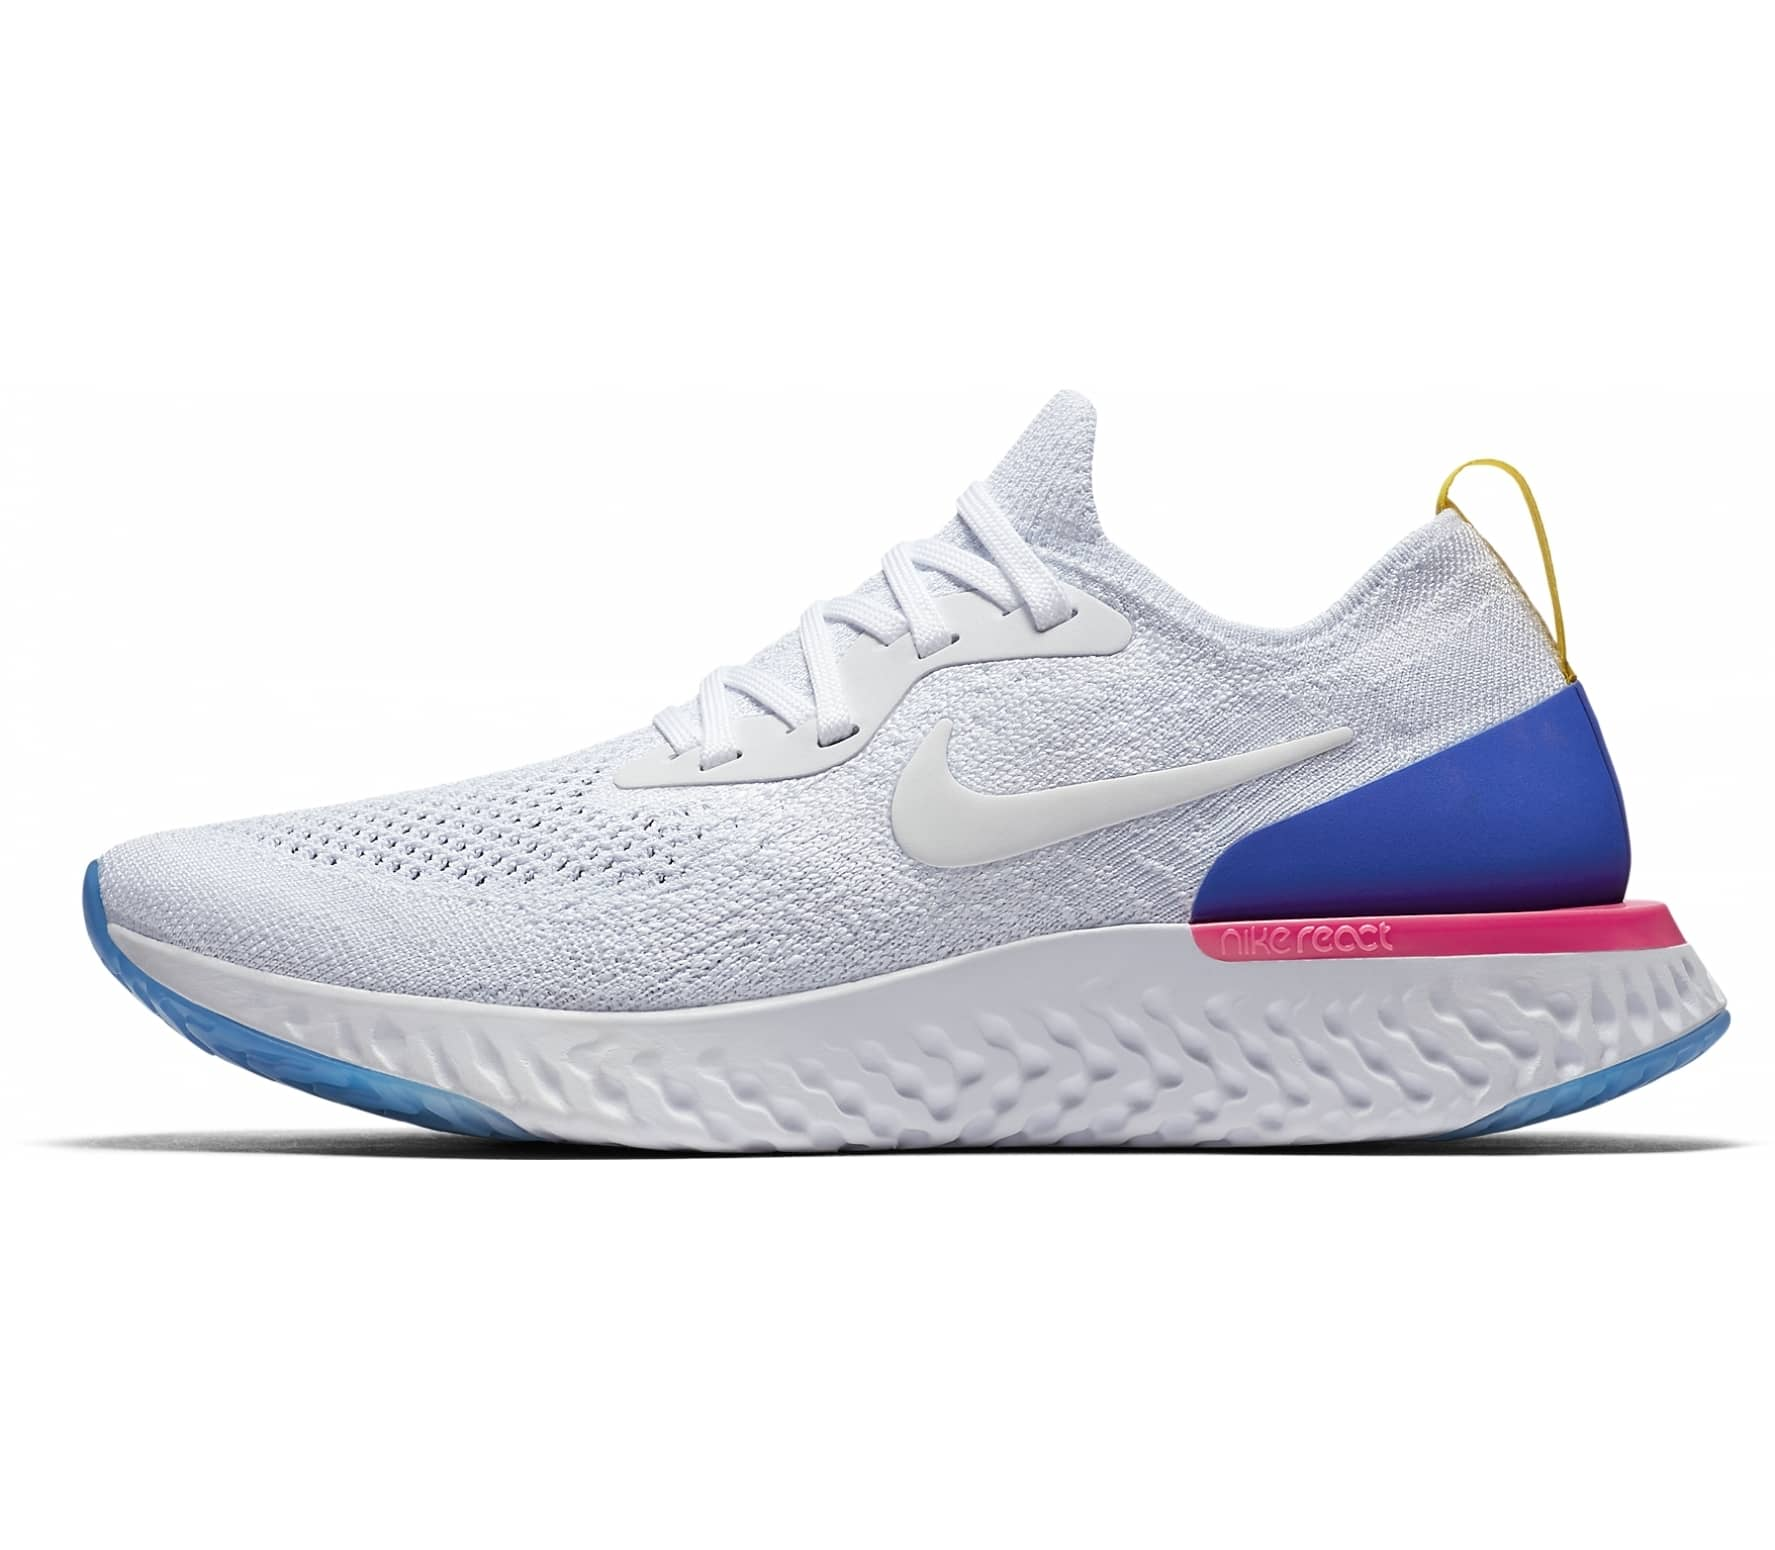 Nike - Epic React Flyknit women's running shoes (white)